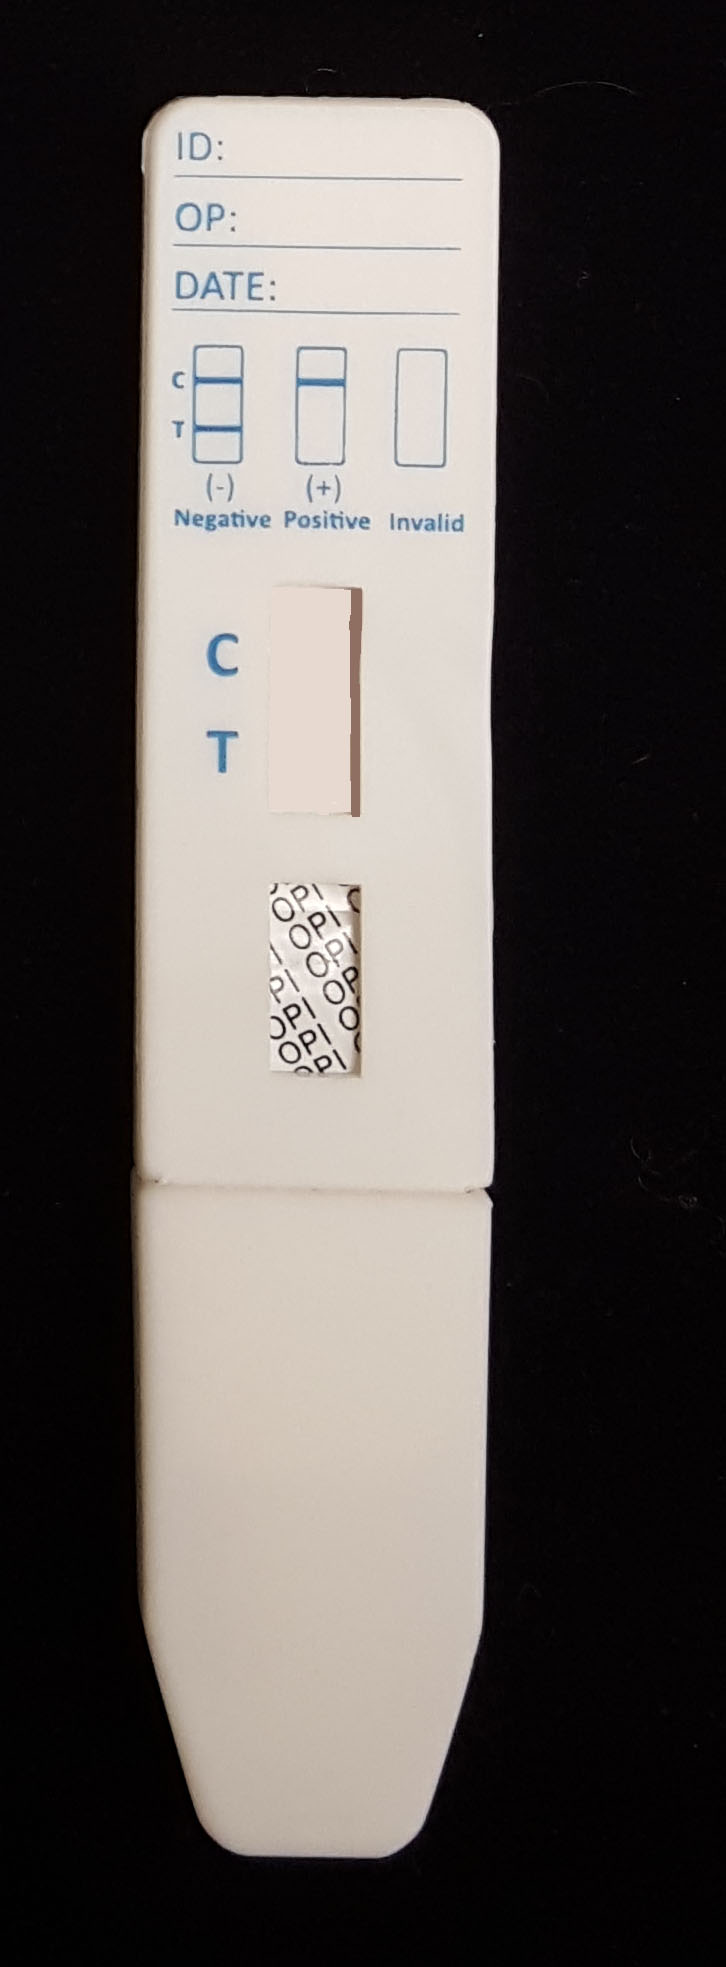 Opiates (OPI) Oral Saliva Drug Test